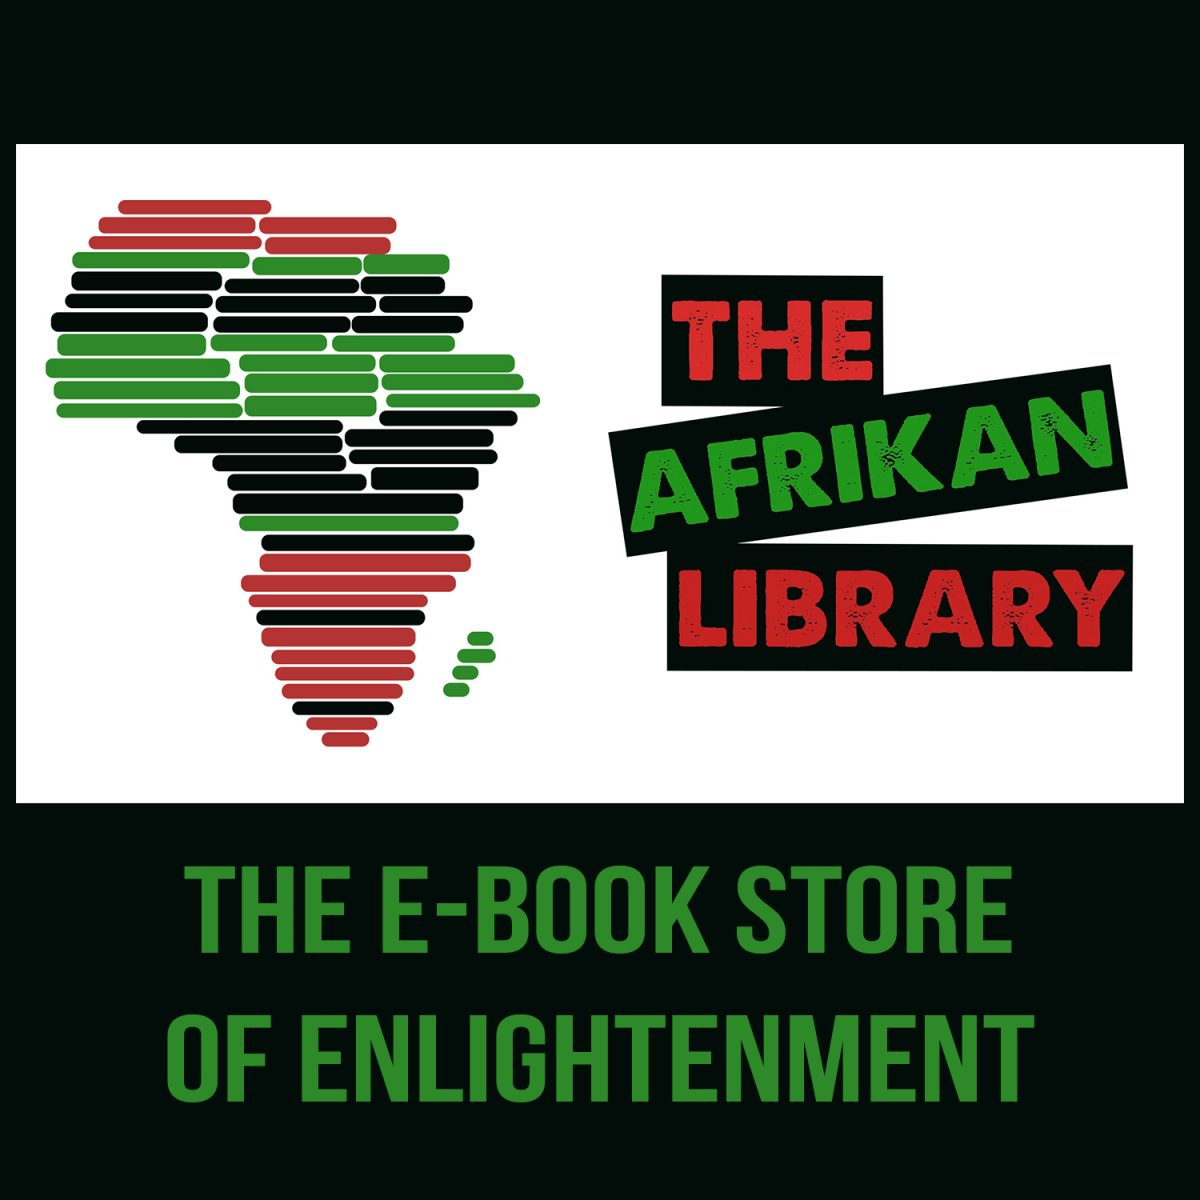 The Afrikan Library – Ebook Store of Enlightenment…